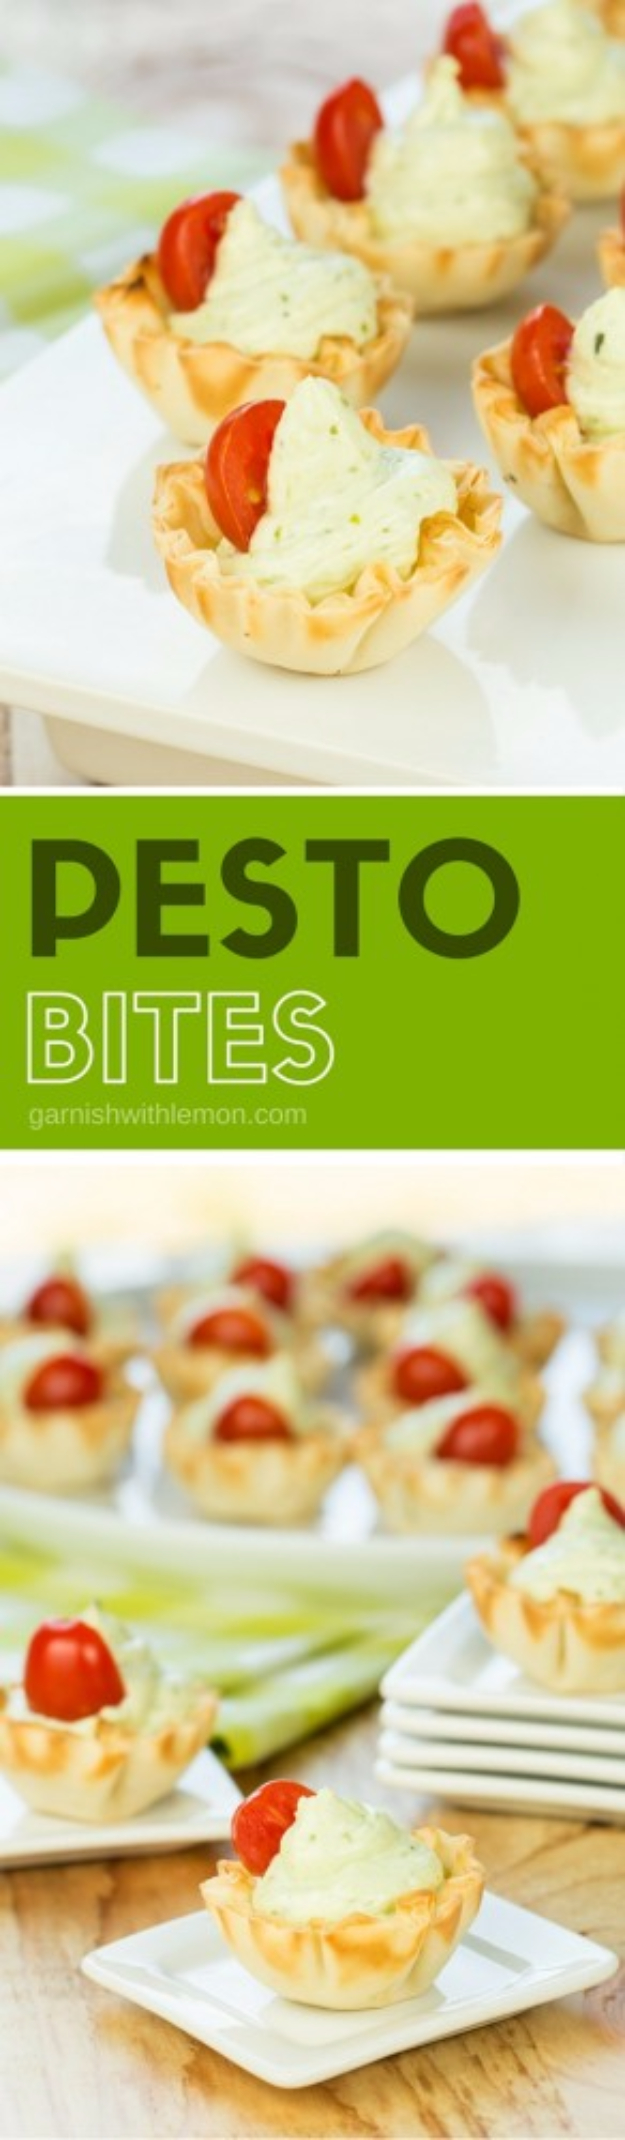 Last Minute Party Foods - Pesto Bites - Easy Appetizers, Simple Snacks, Ideas for 4th of July Parties, Cookouts and BBQ With Friends. Quick and Cheap Food Ideas for a Crowd#appetizers #recipes #party